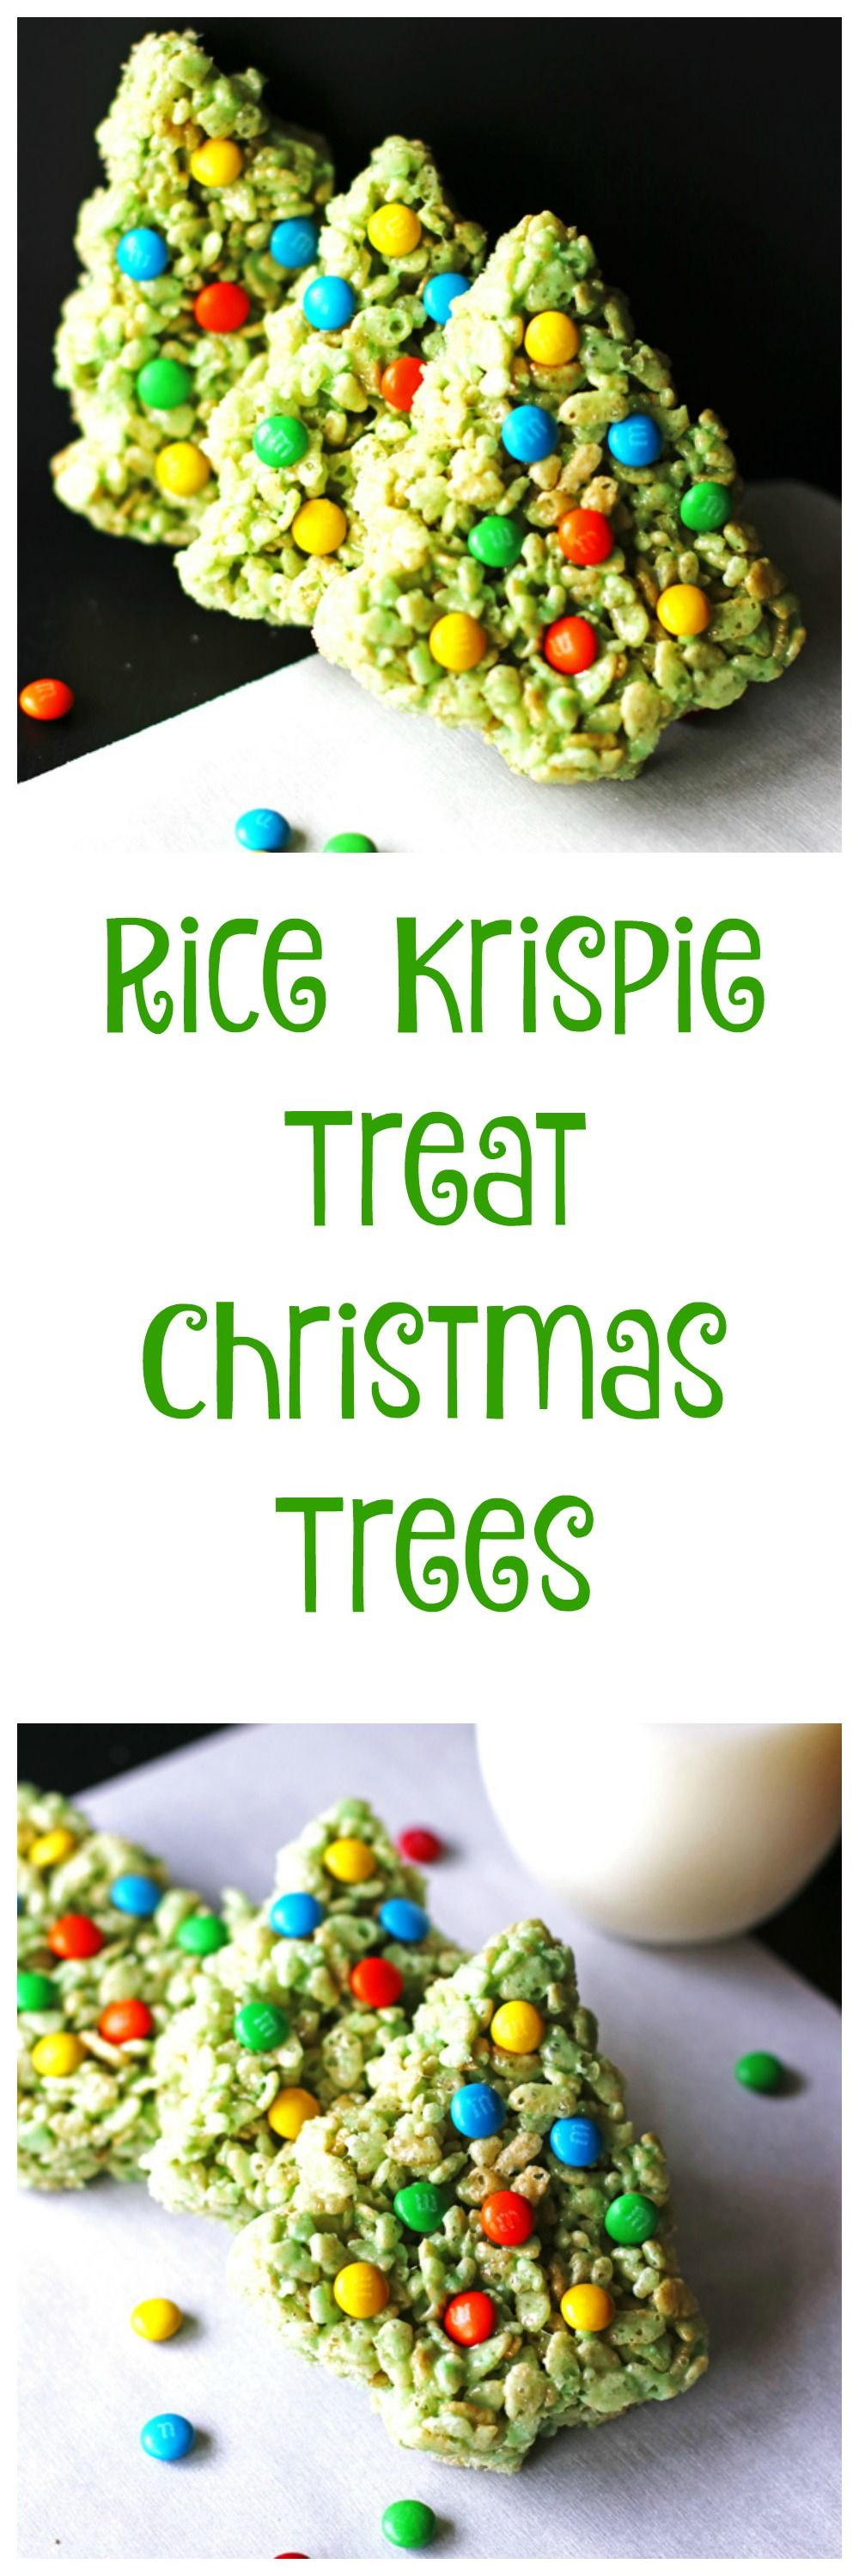 Rice Krispie Christmas Trees | Recipe | Christmas treats ...